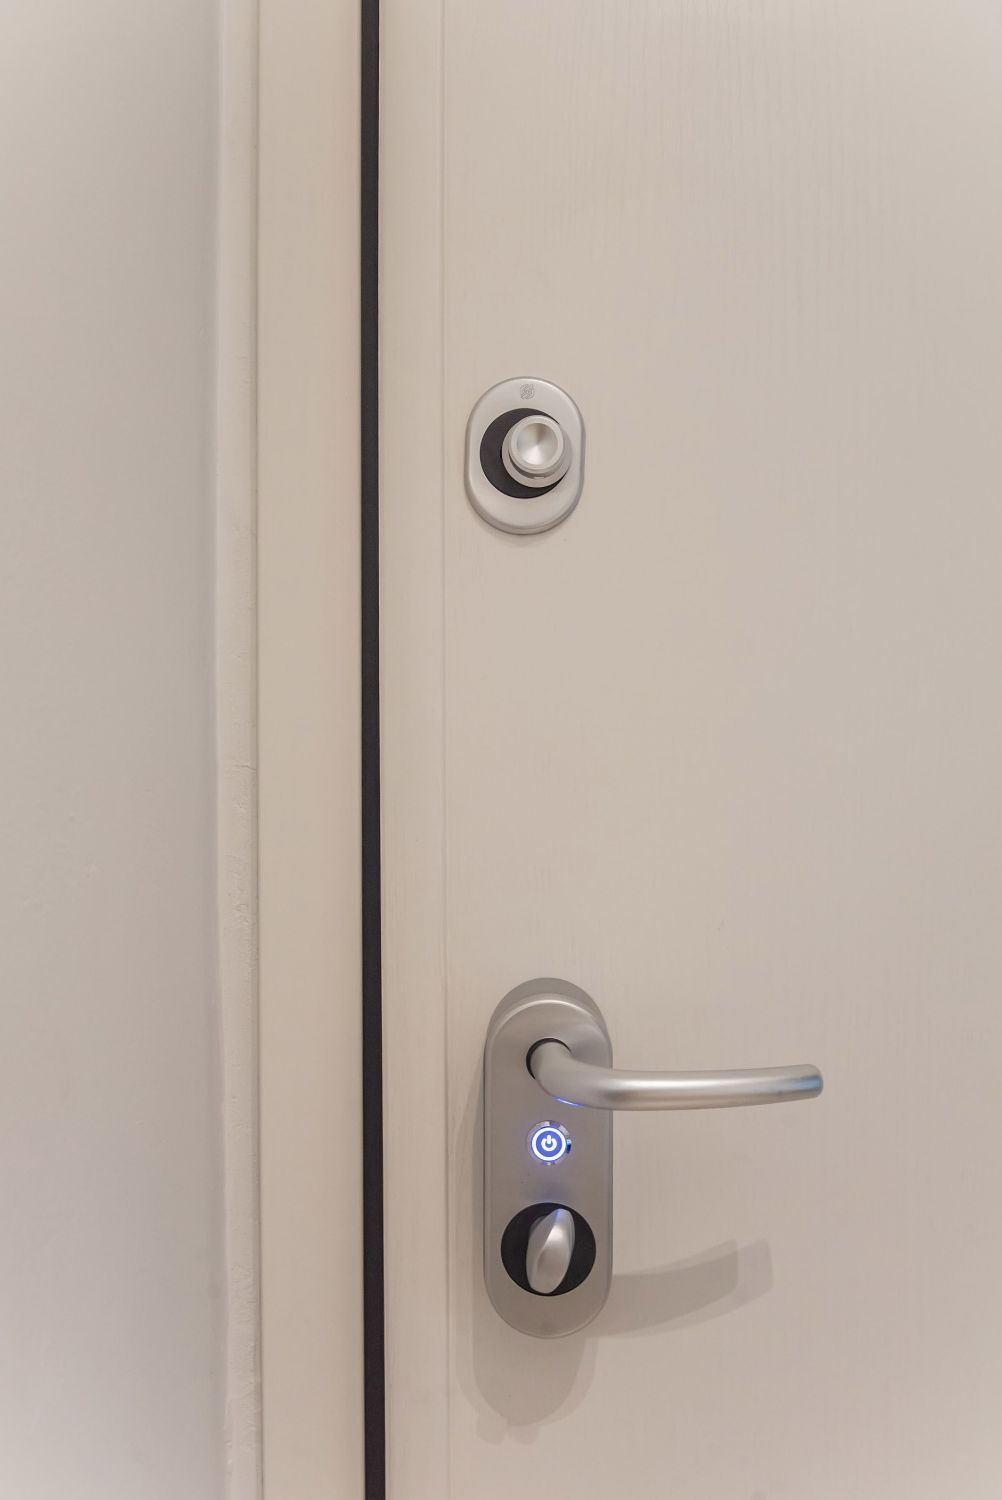 Apartment entrance with automatic lock